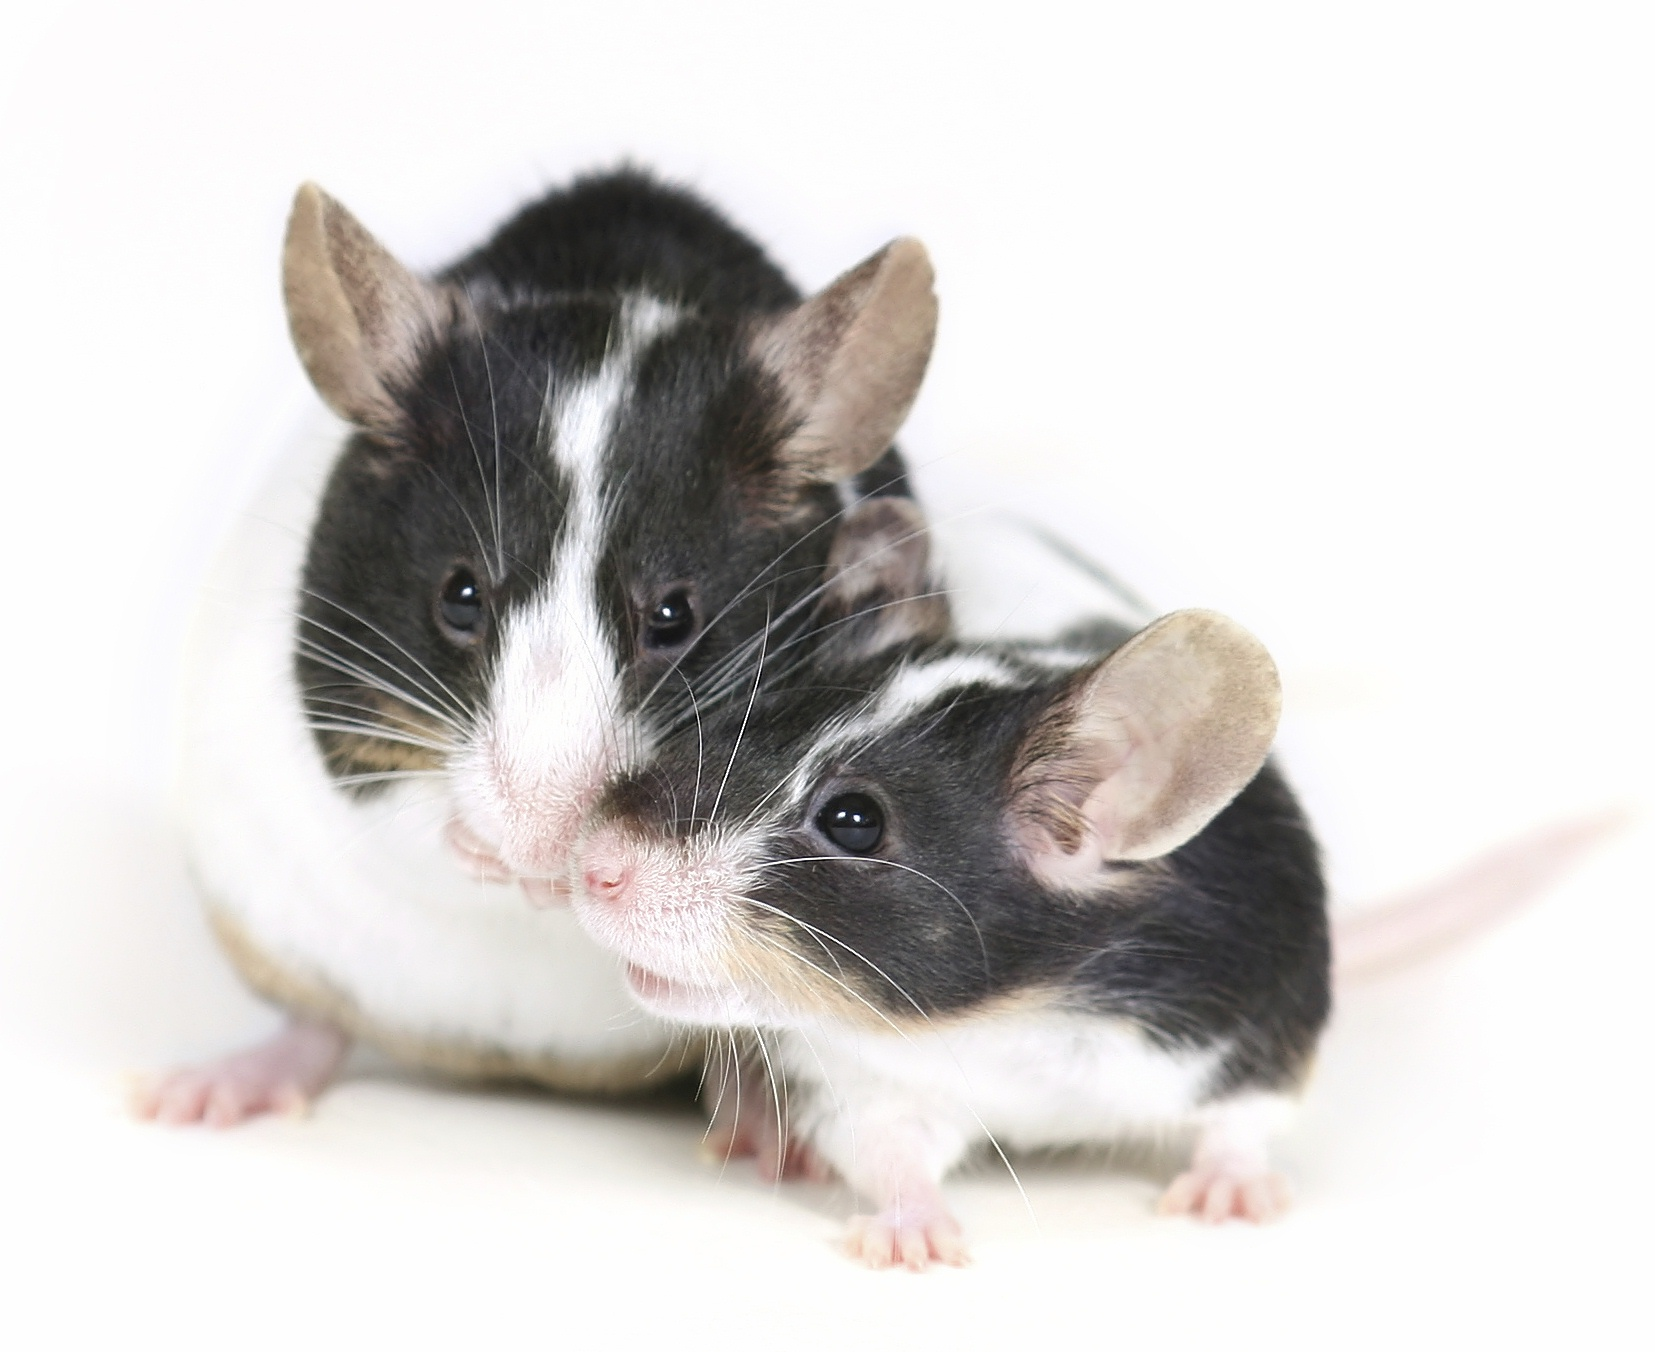 mice_snuggling_cropped.jpg